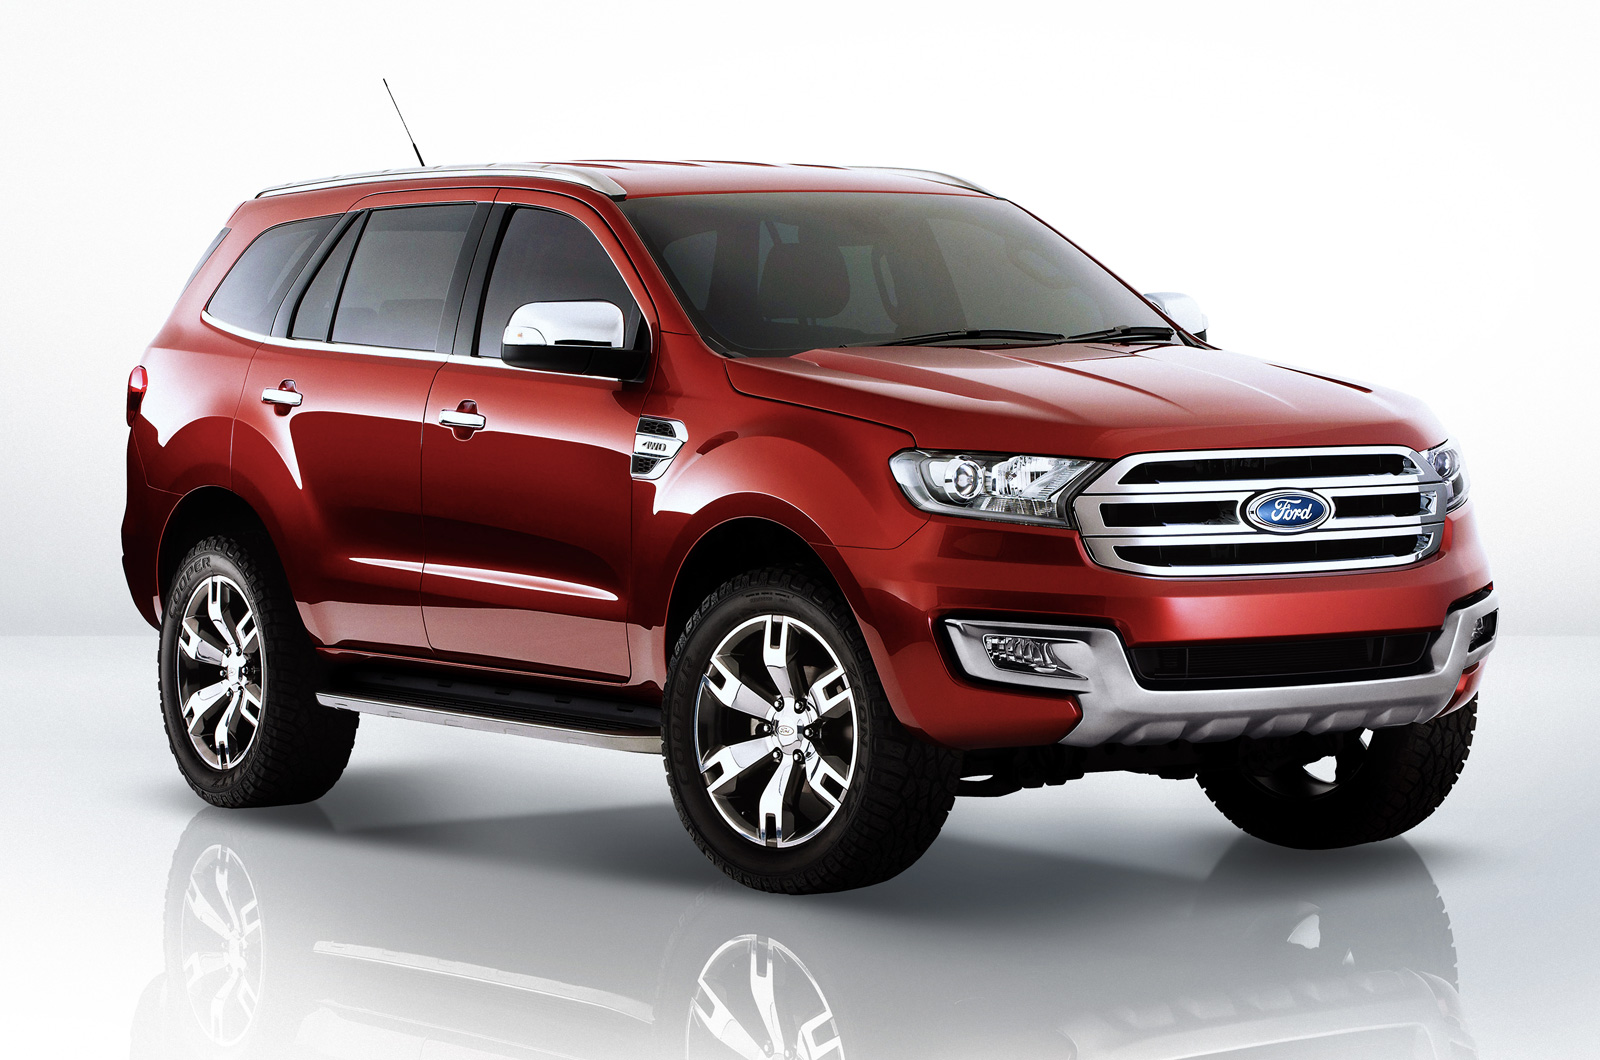 New Ford Endeavour in India in 2015 - Autocar India